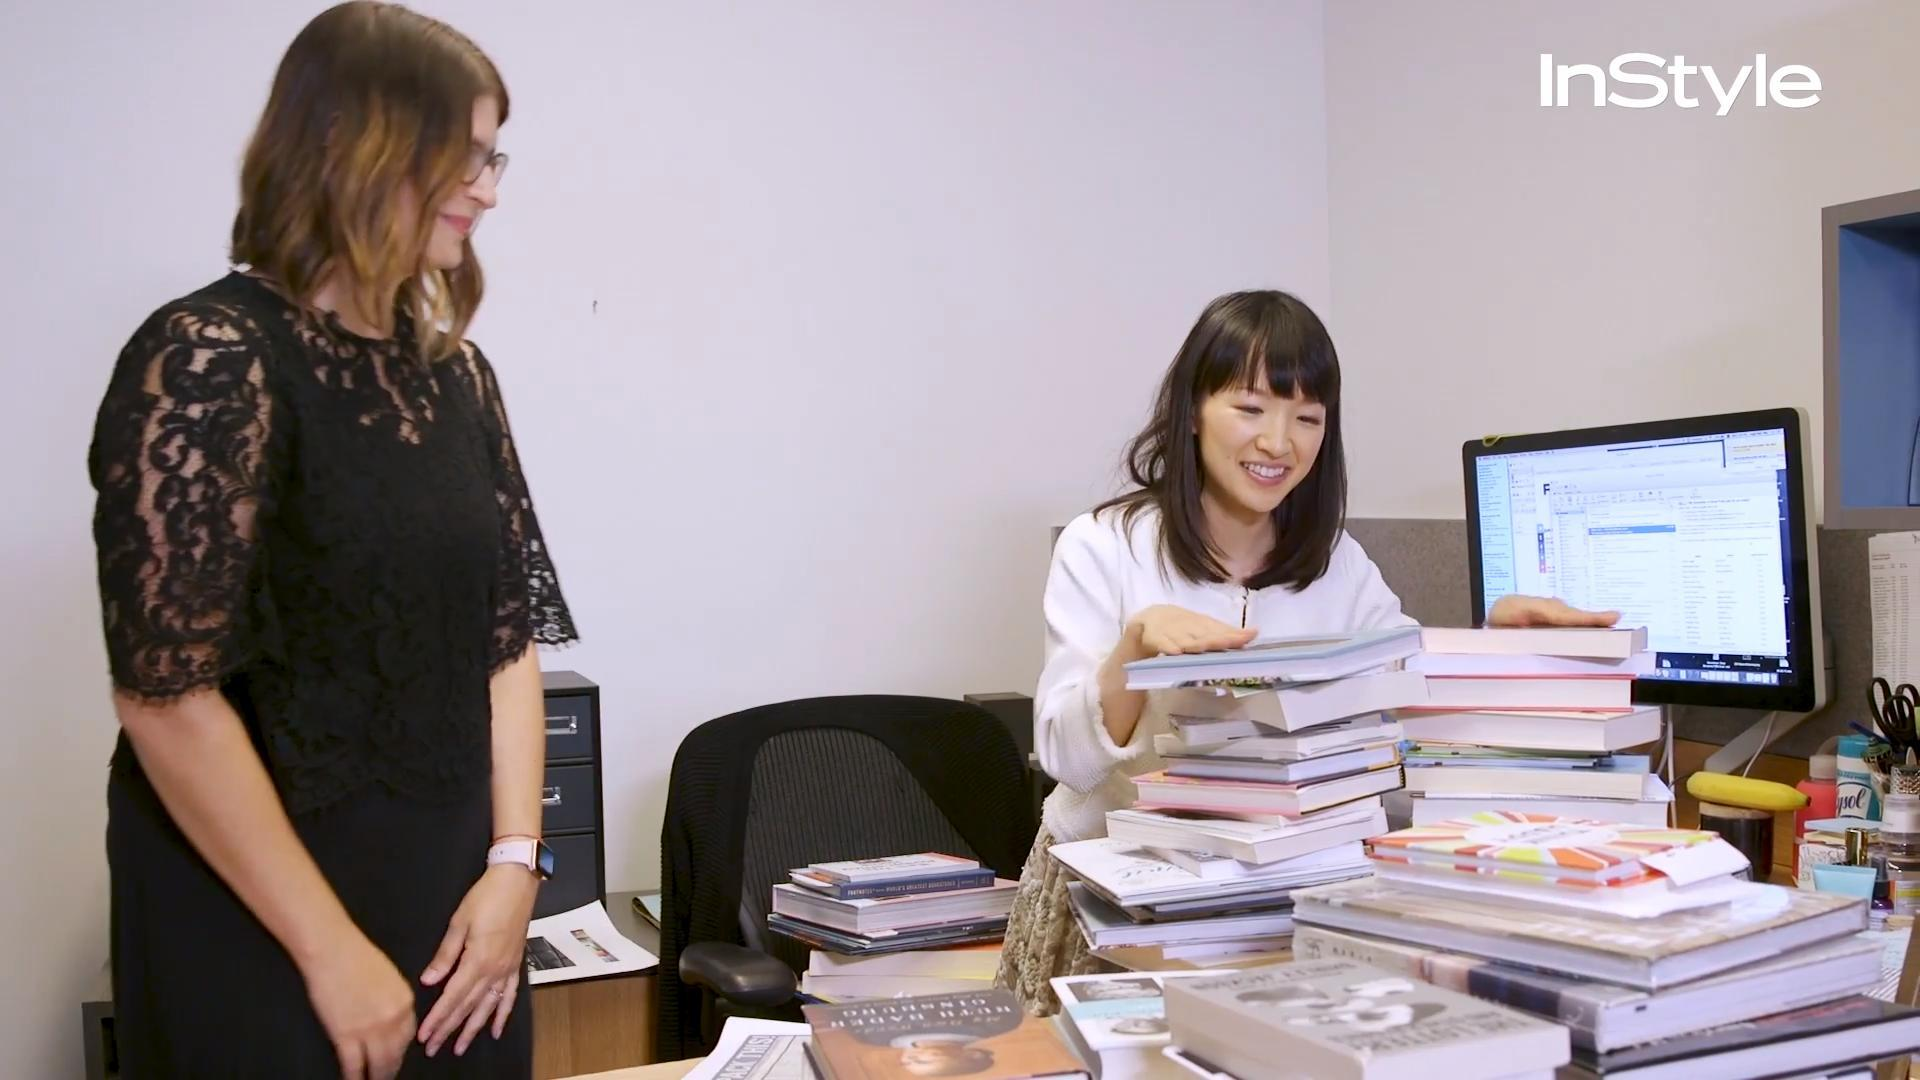 6 lessons from Marie Kondo's Netflix show you can apply to work and career